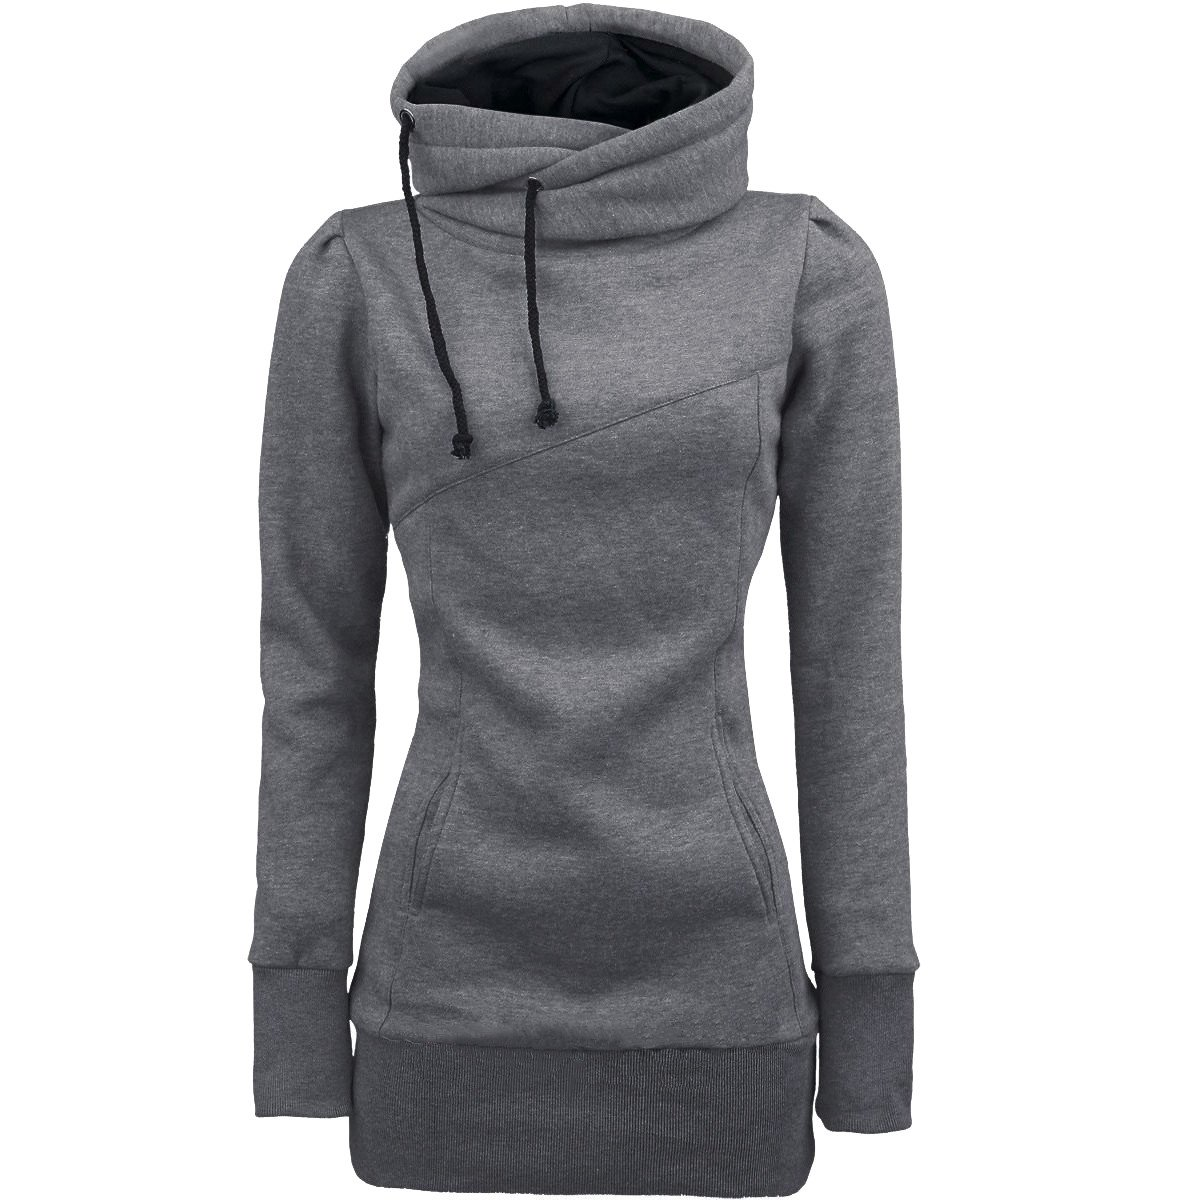 VANSOON Sweatshirts for Women Long Sleeve Sweater Fashion Loose Pullover T-Shirt Hooded Long Sleeve Blouse